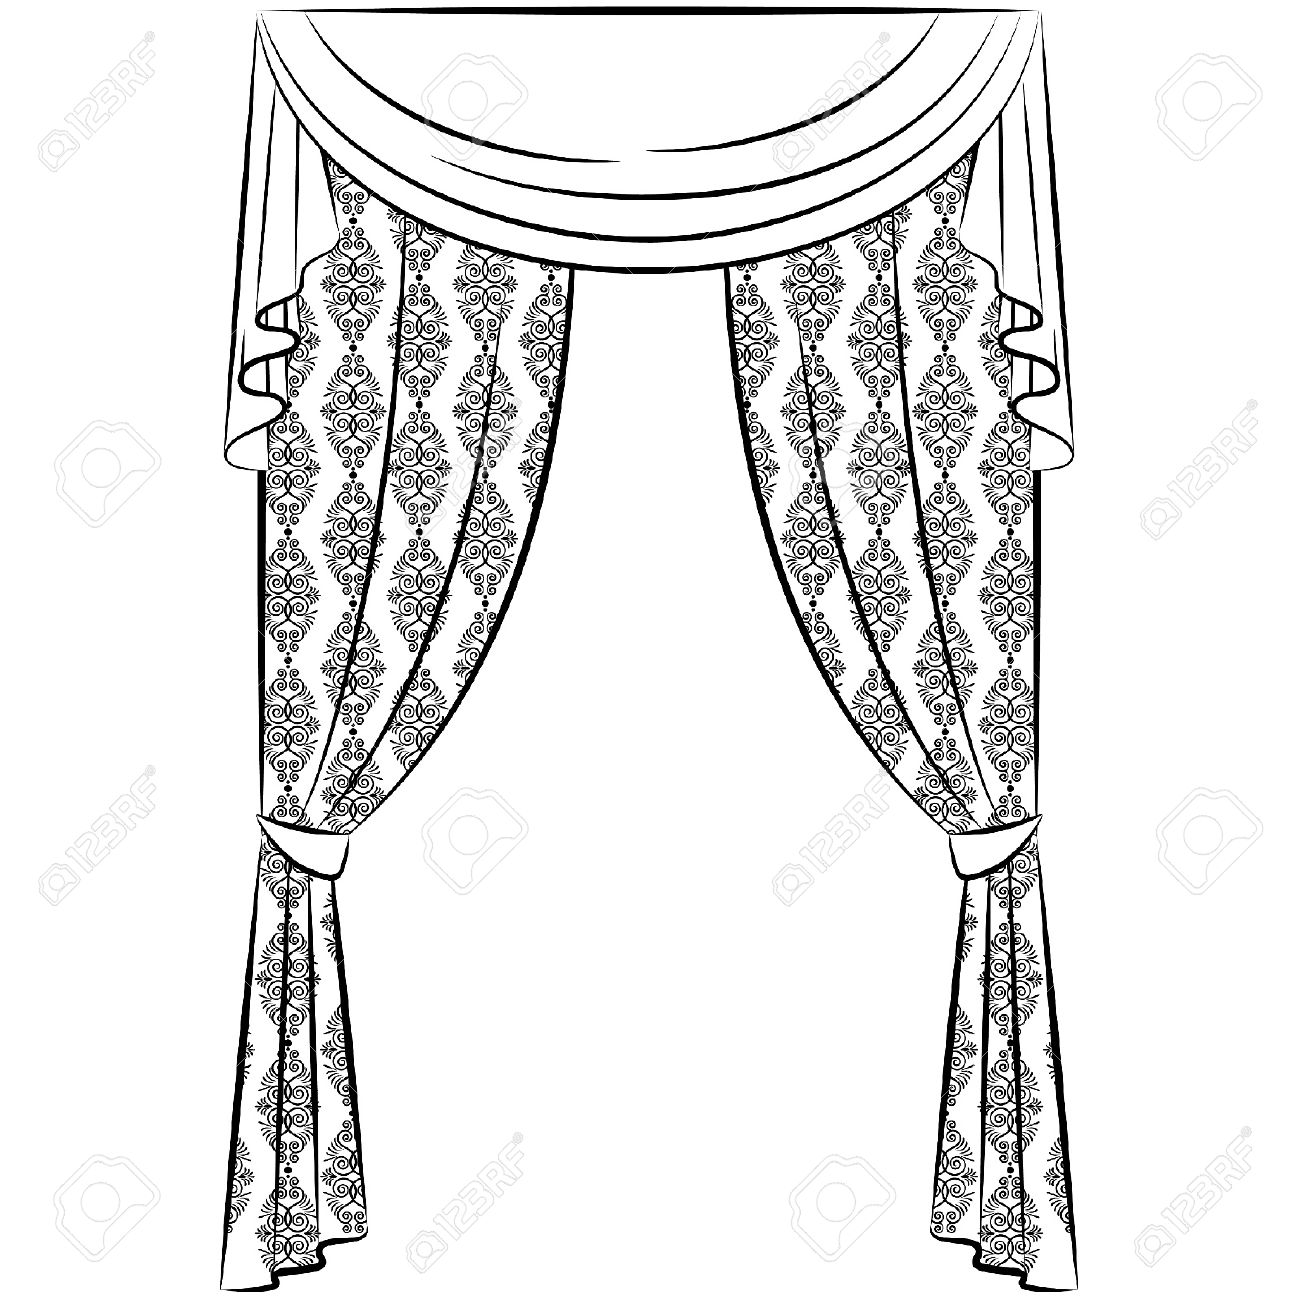 Curtain Clipart Black And White | Gopelling.net for Window Clipart Black And White  61obs